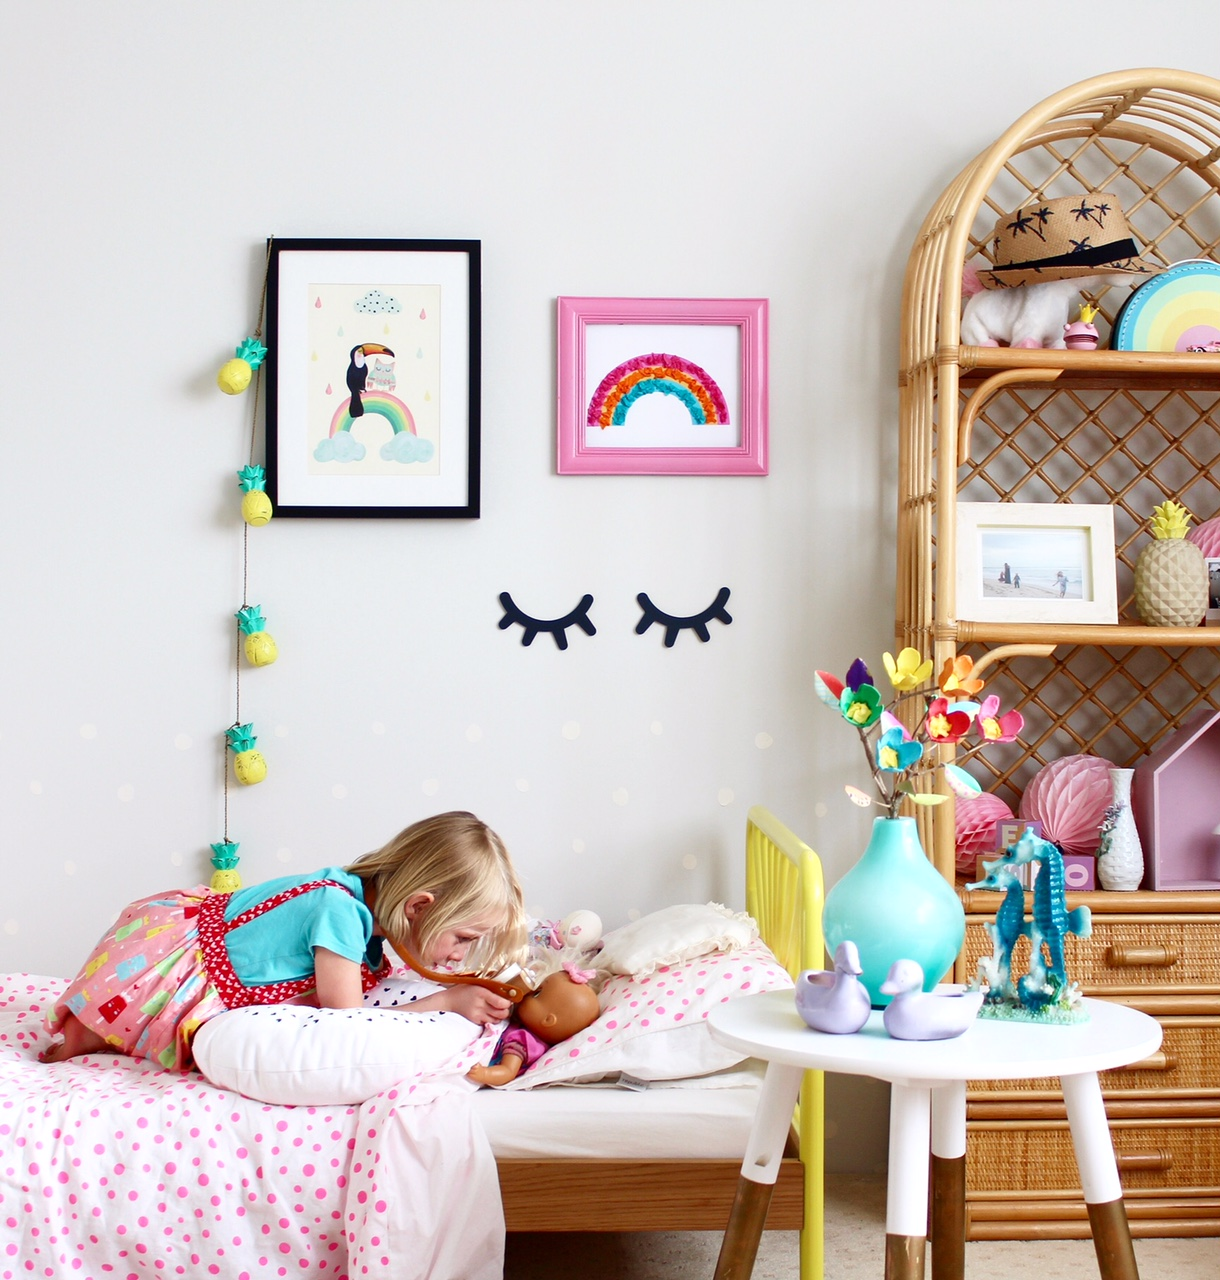 Kids bedroom ideas - colourful toddler girls bedroom. Super cute space!